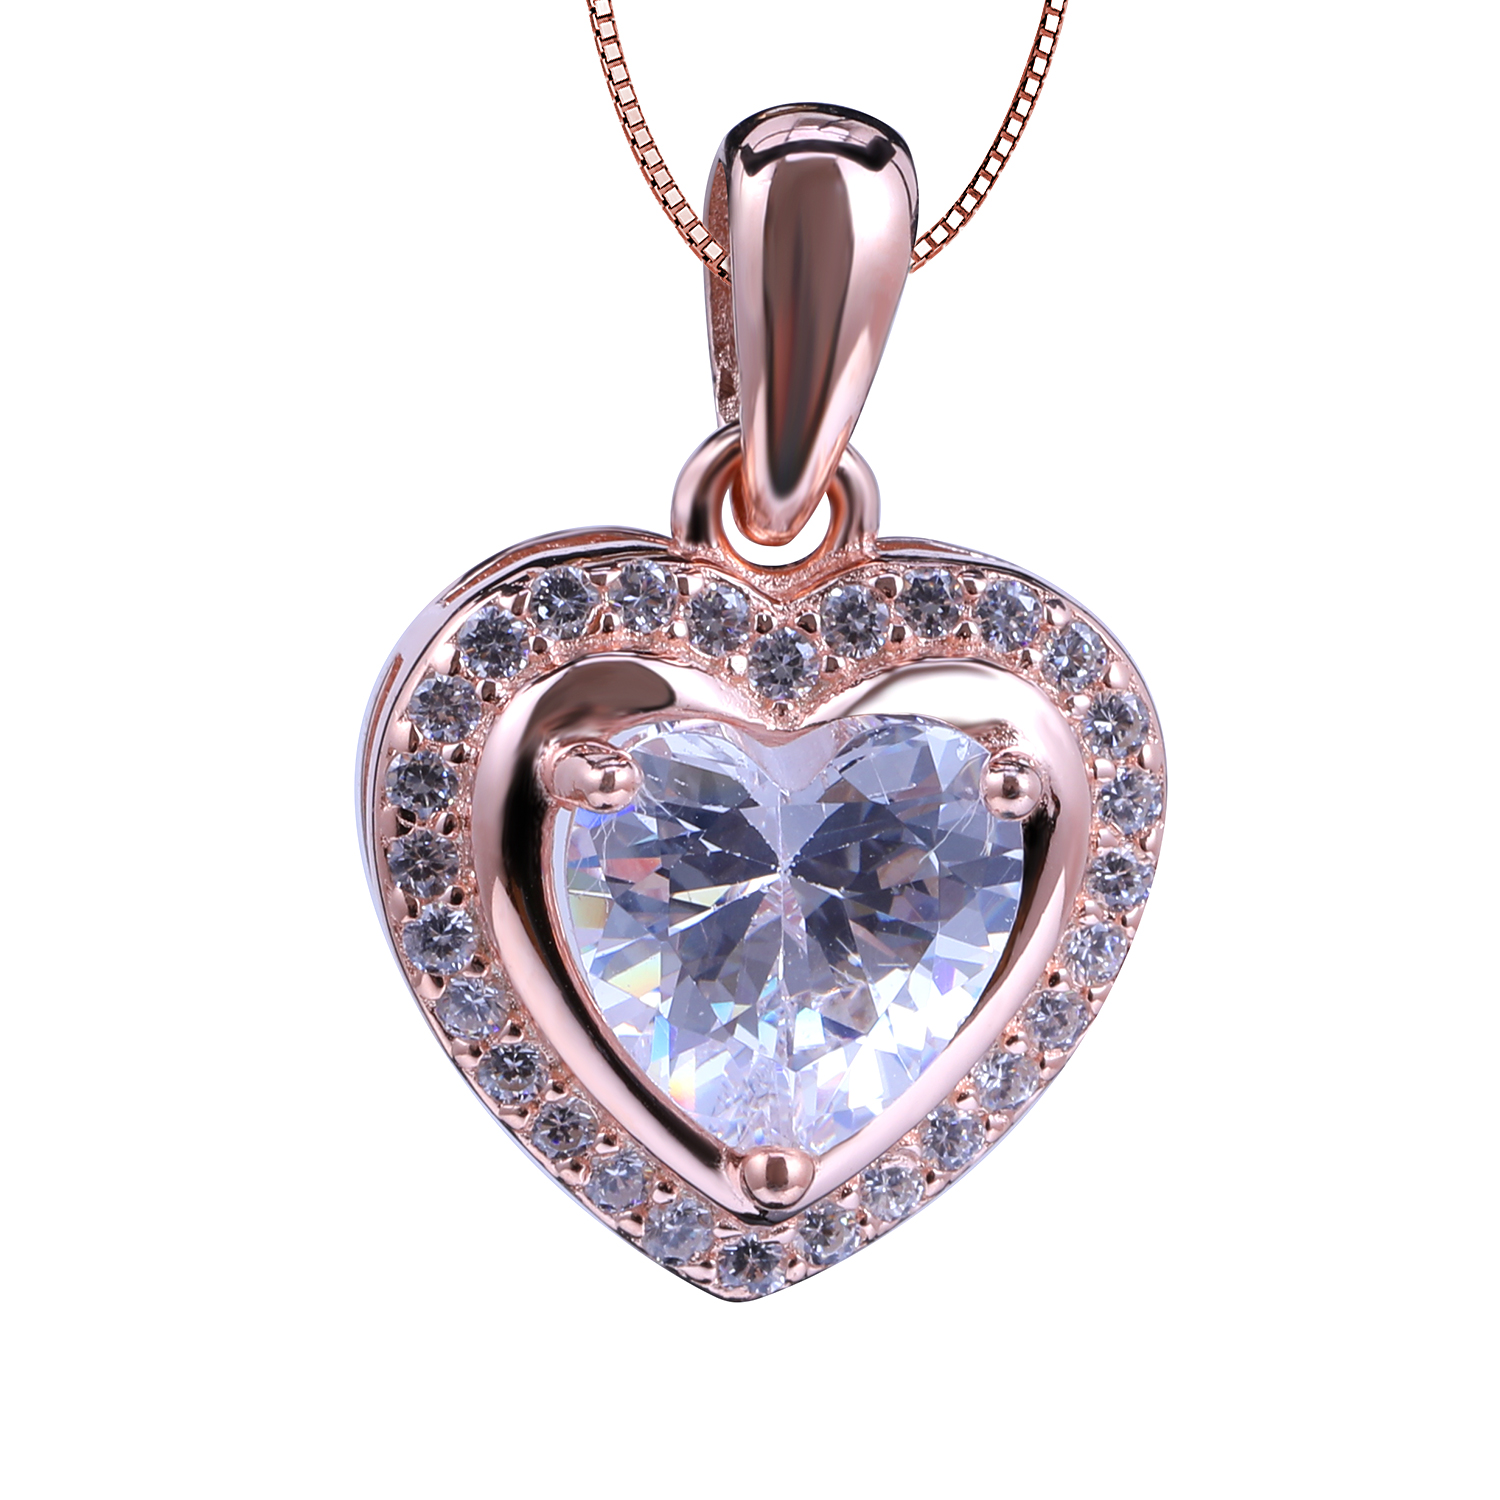 Hot Sales Fashionable Customized Sterling Rose Gold Heart Women's Fashion Jewelry